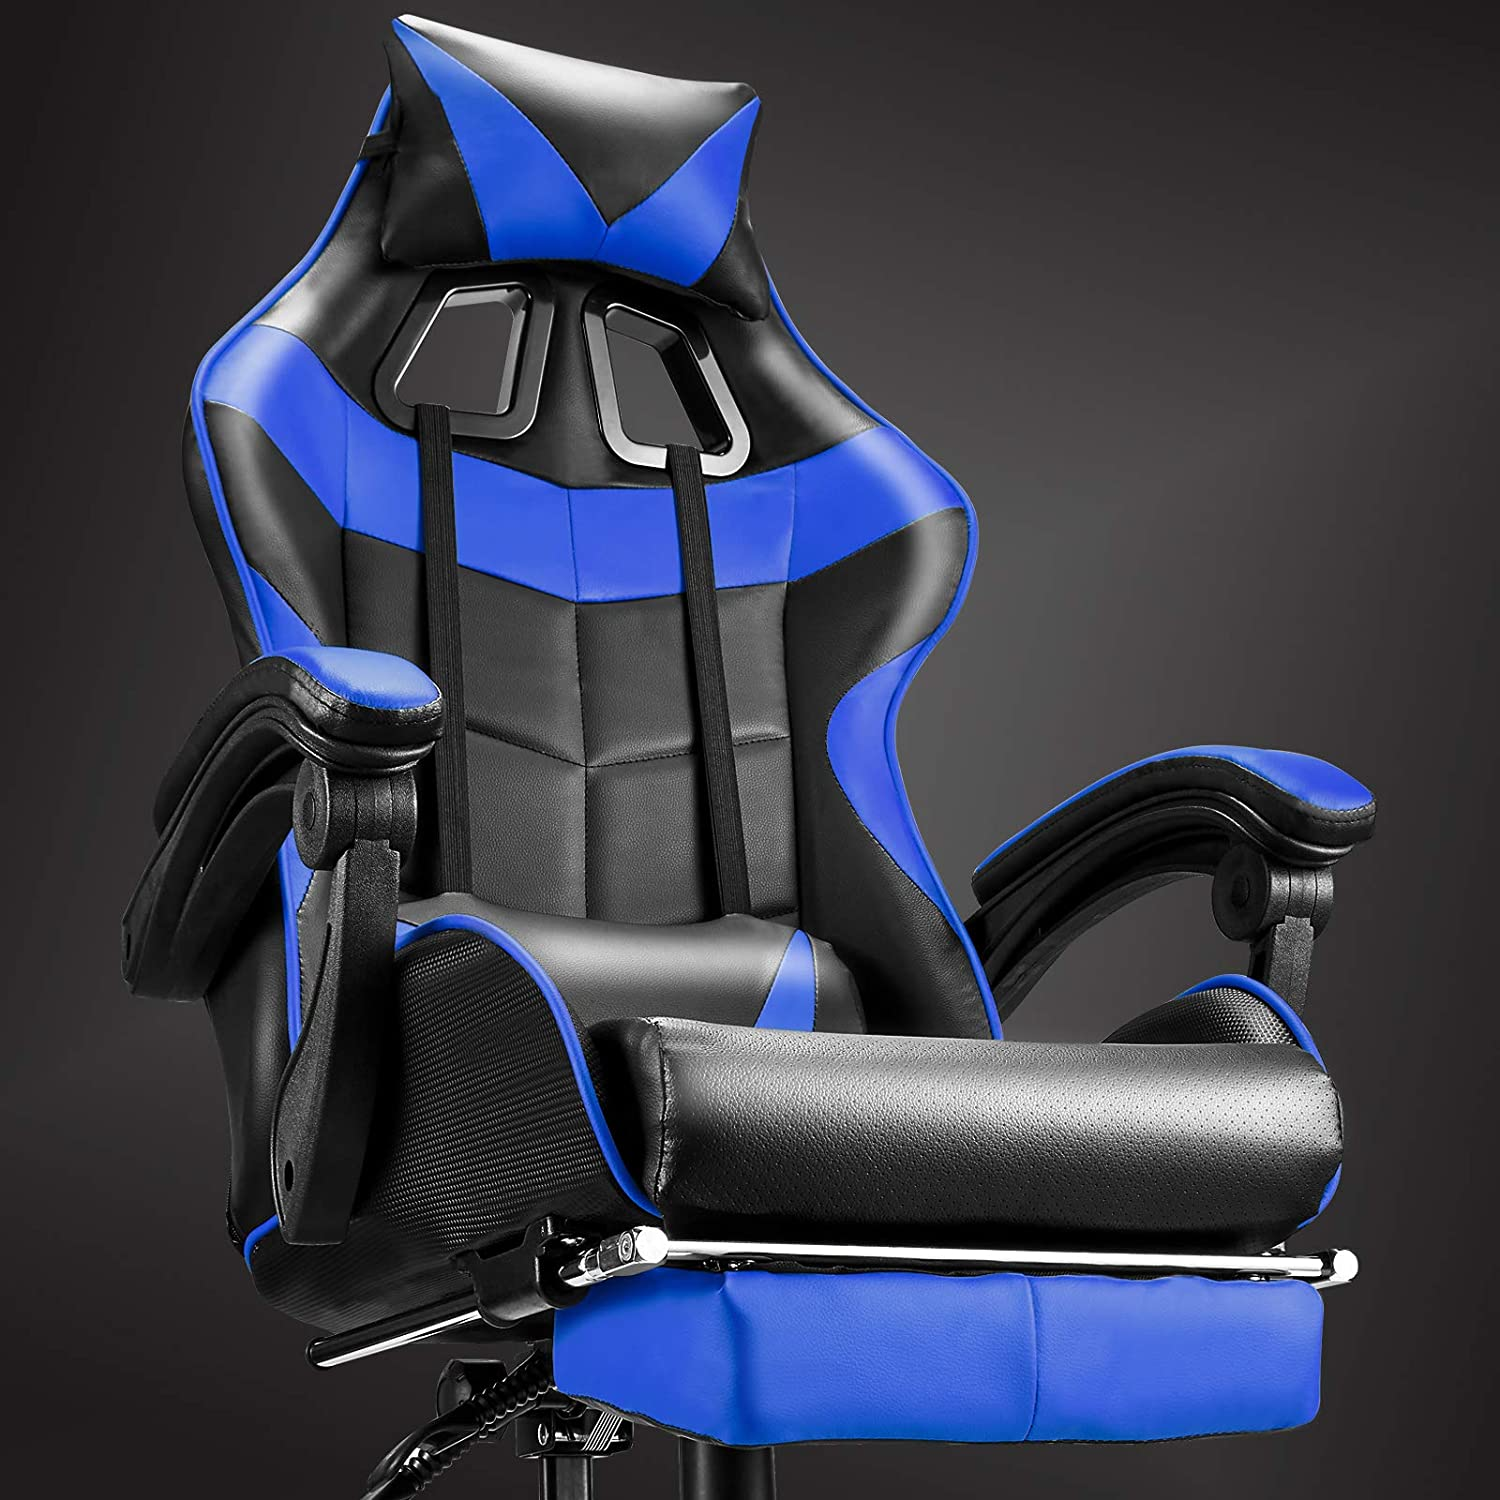 Soontrans High Back Computer Chair,Gaming Chair,Ergonomic Racing Style PC Office Chair,Desk Chair with Headrest Lumbar Support Footrest Adjustable Recliner Chair for Home,Office,Gaming Room (Blue)